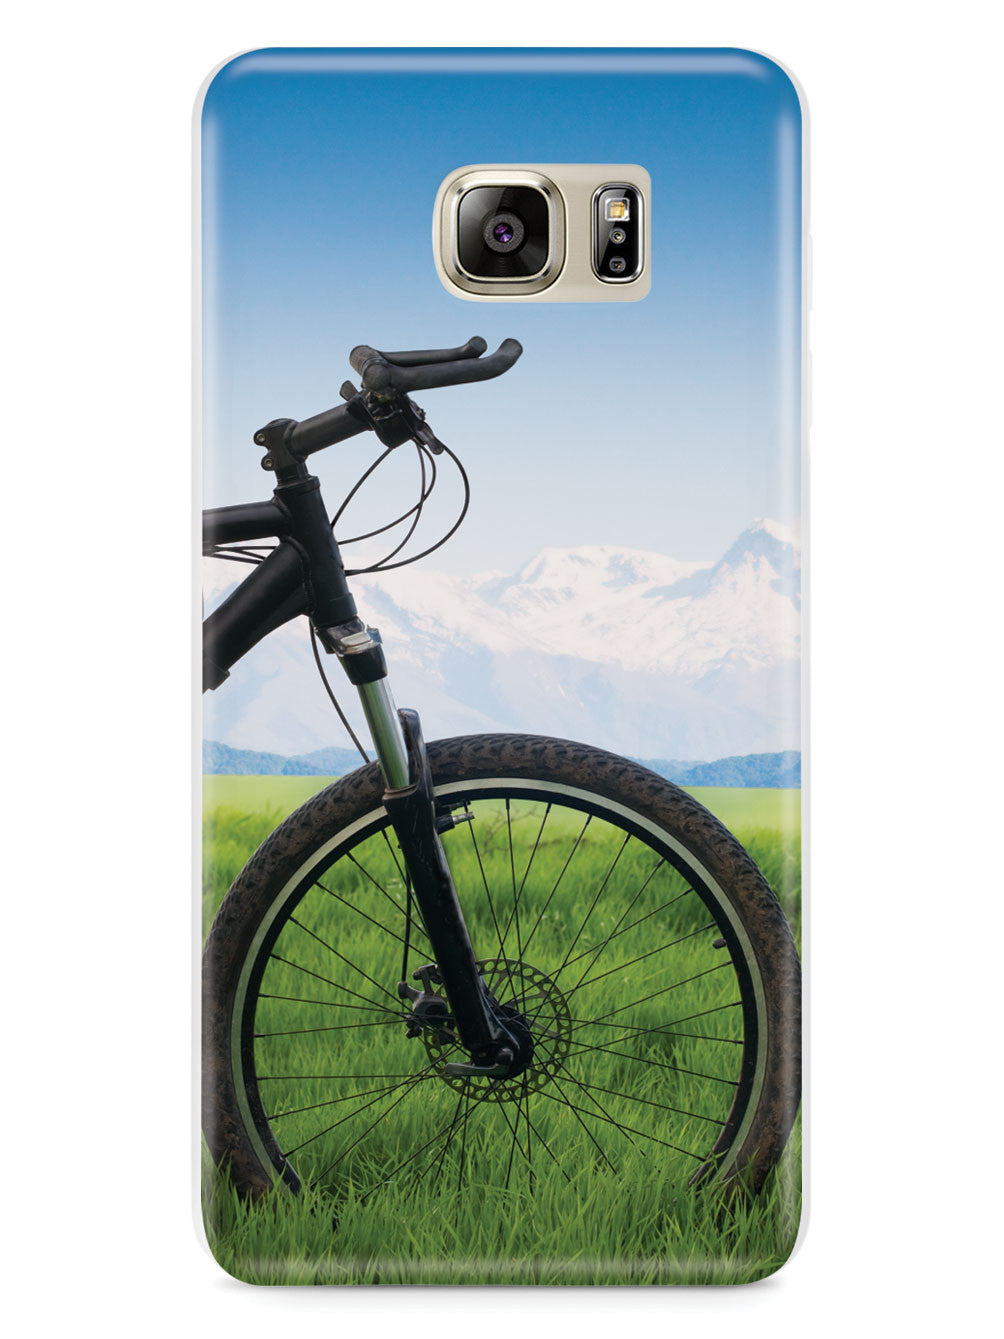 Explore Nature - Bicycle - White Case